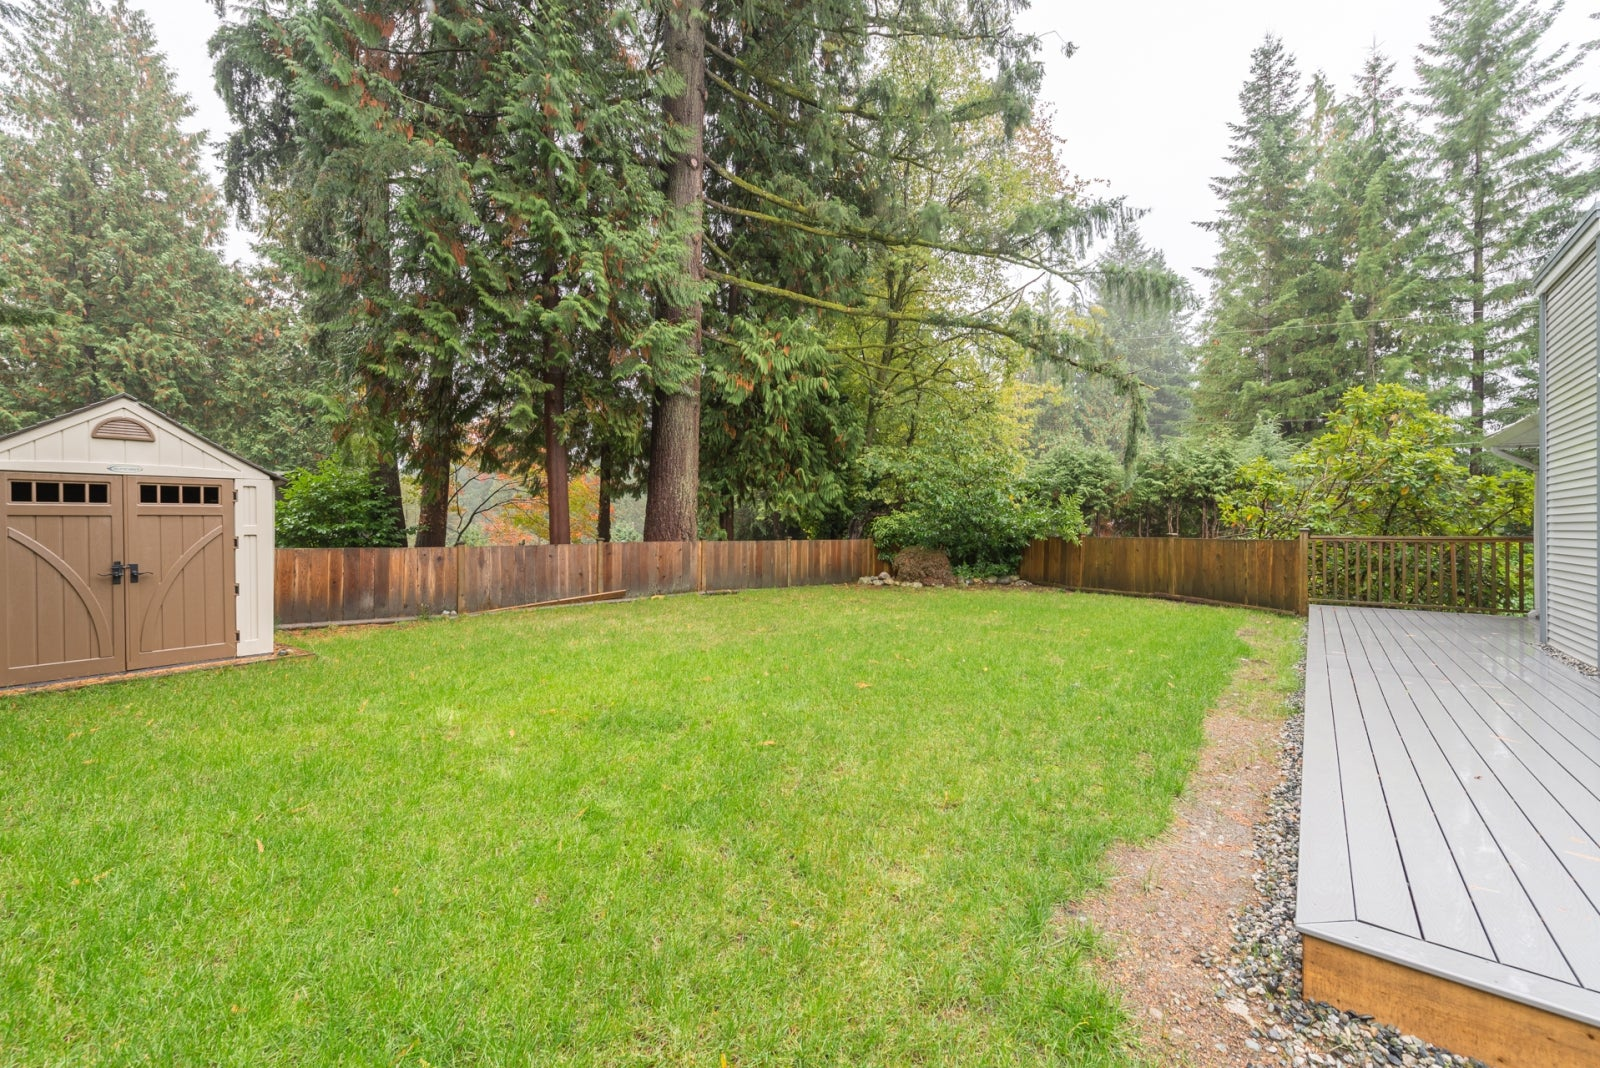 1780 LANGWORTHY STREET - Lynn Valley House/Single Family for sale, 4 Bedrooms (R2215480) #25